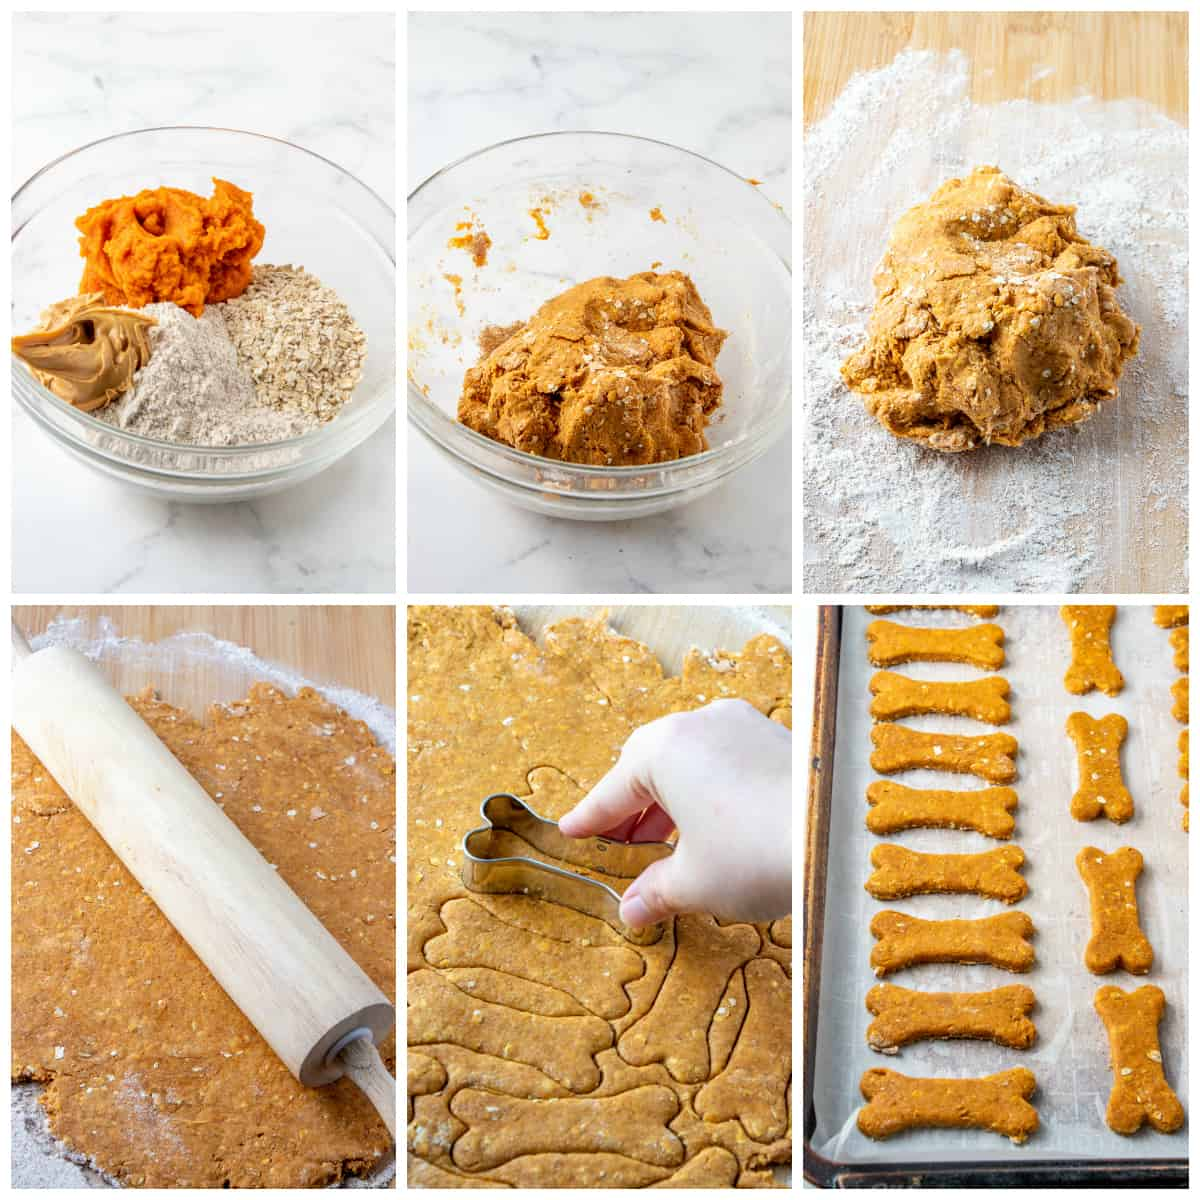 Step by step photos on how to make homemade dog treats